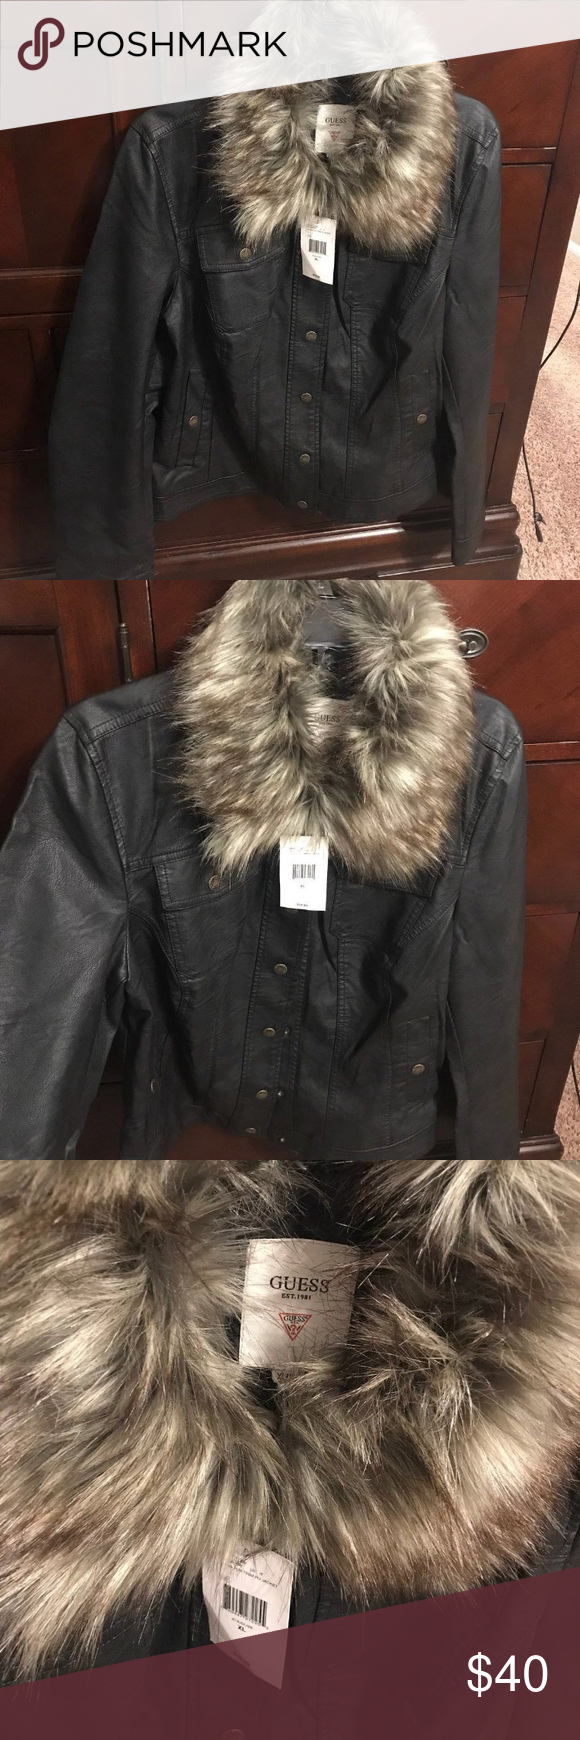 Guess leather jacket New authentic guess Jacket with